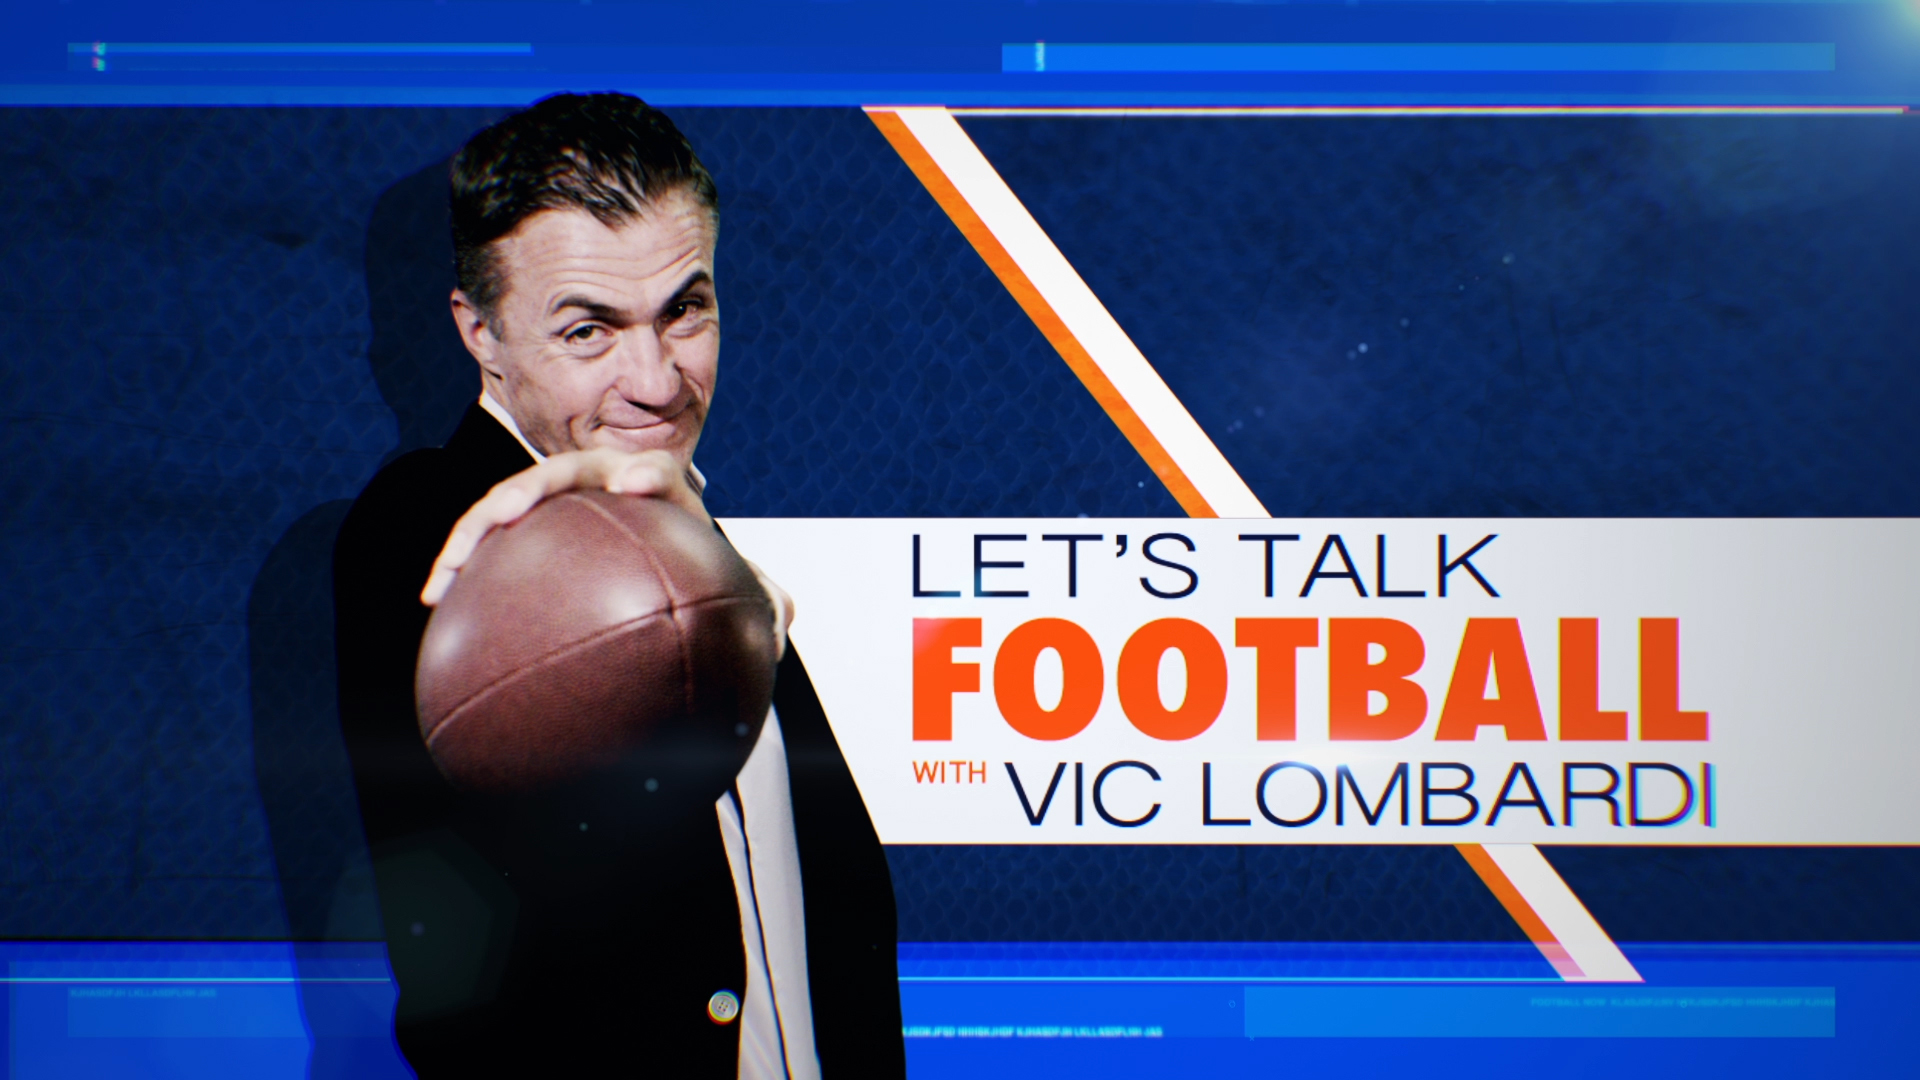 Lets-Talk-Football-Vic-Lombardi.jpg